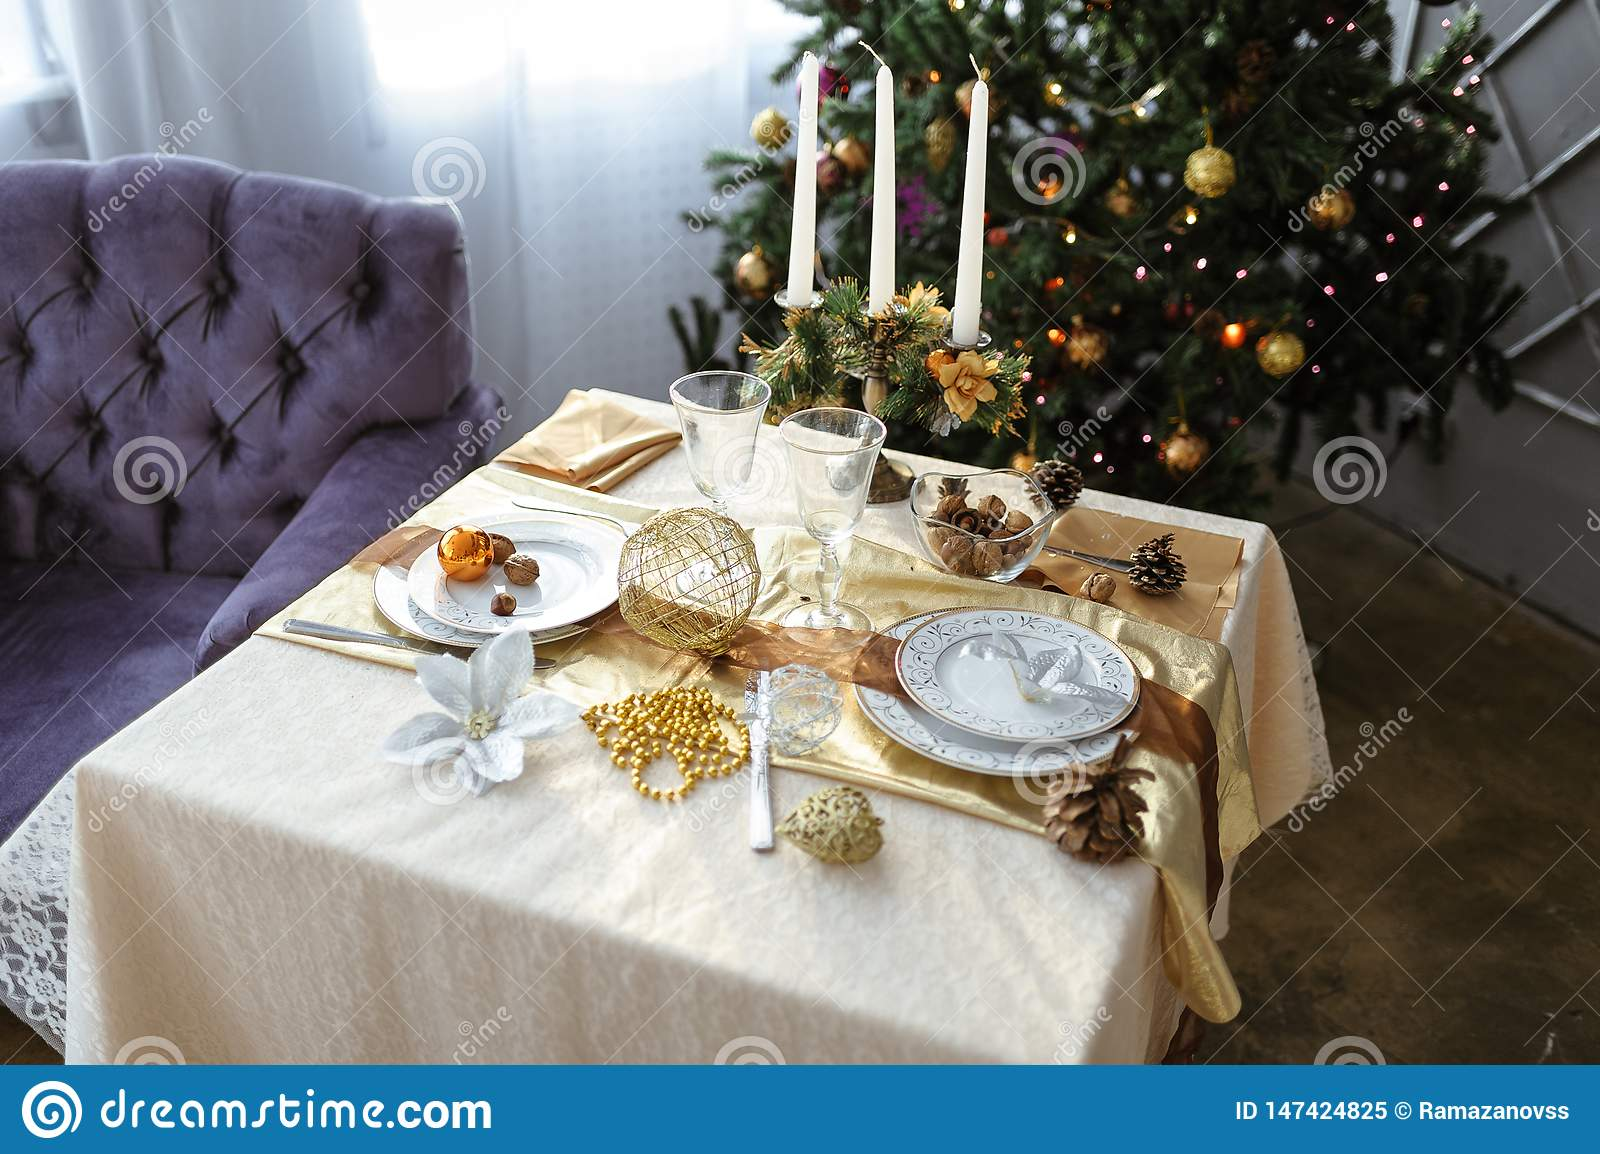 Decorated table with candles and white tablecloth on the background of a decorated Christmas tree